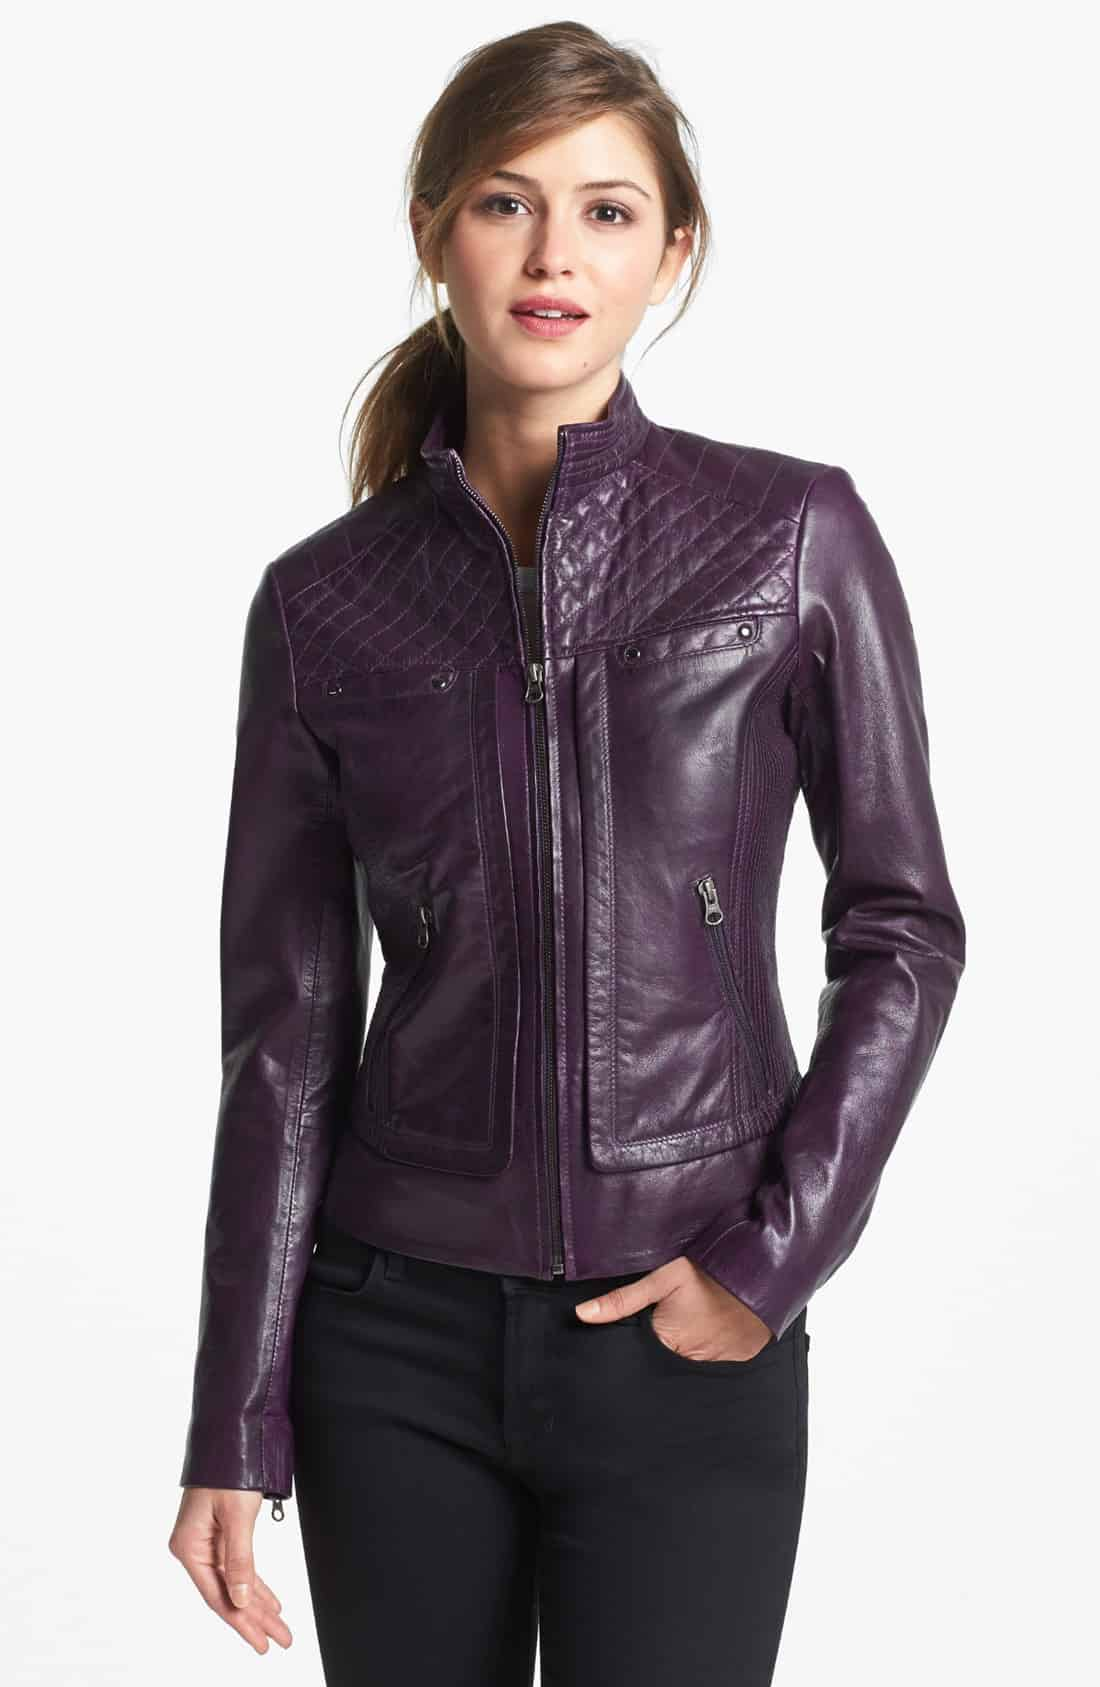 Women's leather jacket trends spring 2016 – DRESS TRENDS